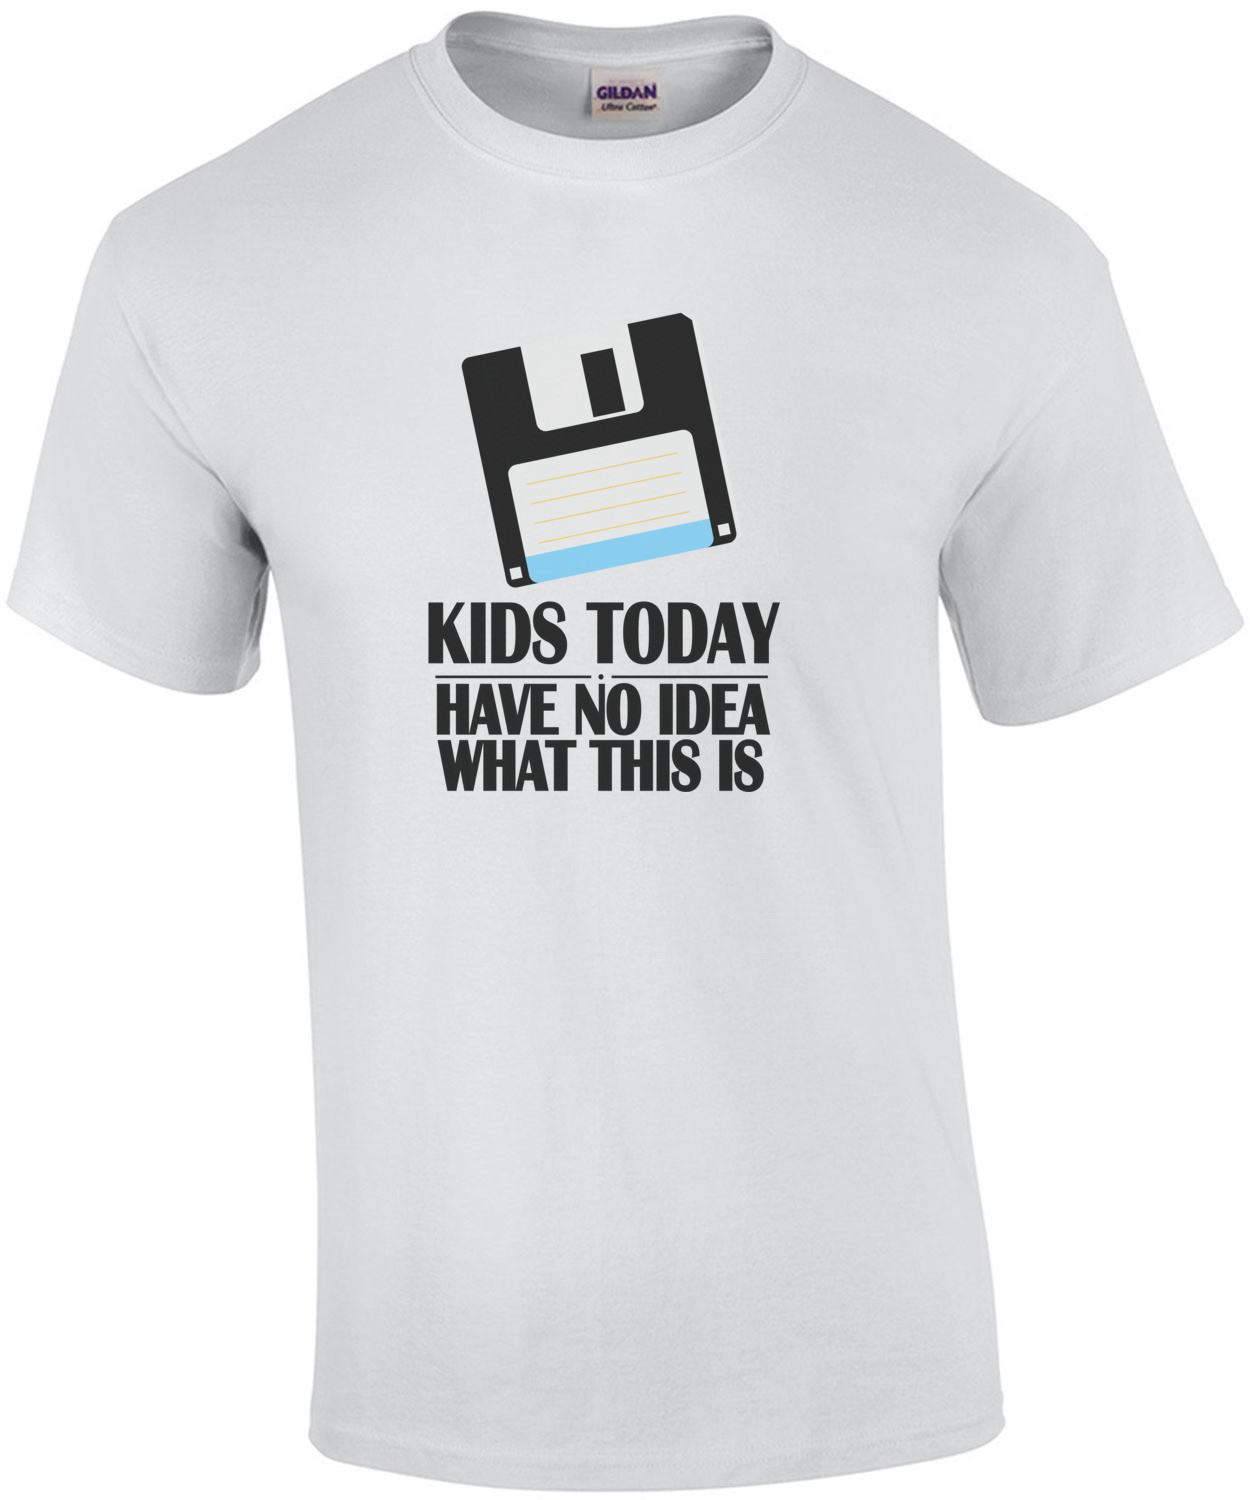 Kids today have no idea what this is - floppy disk t-shirt